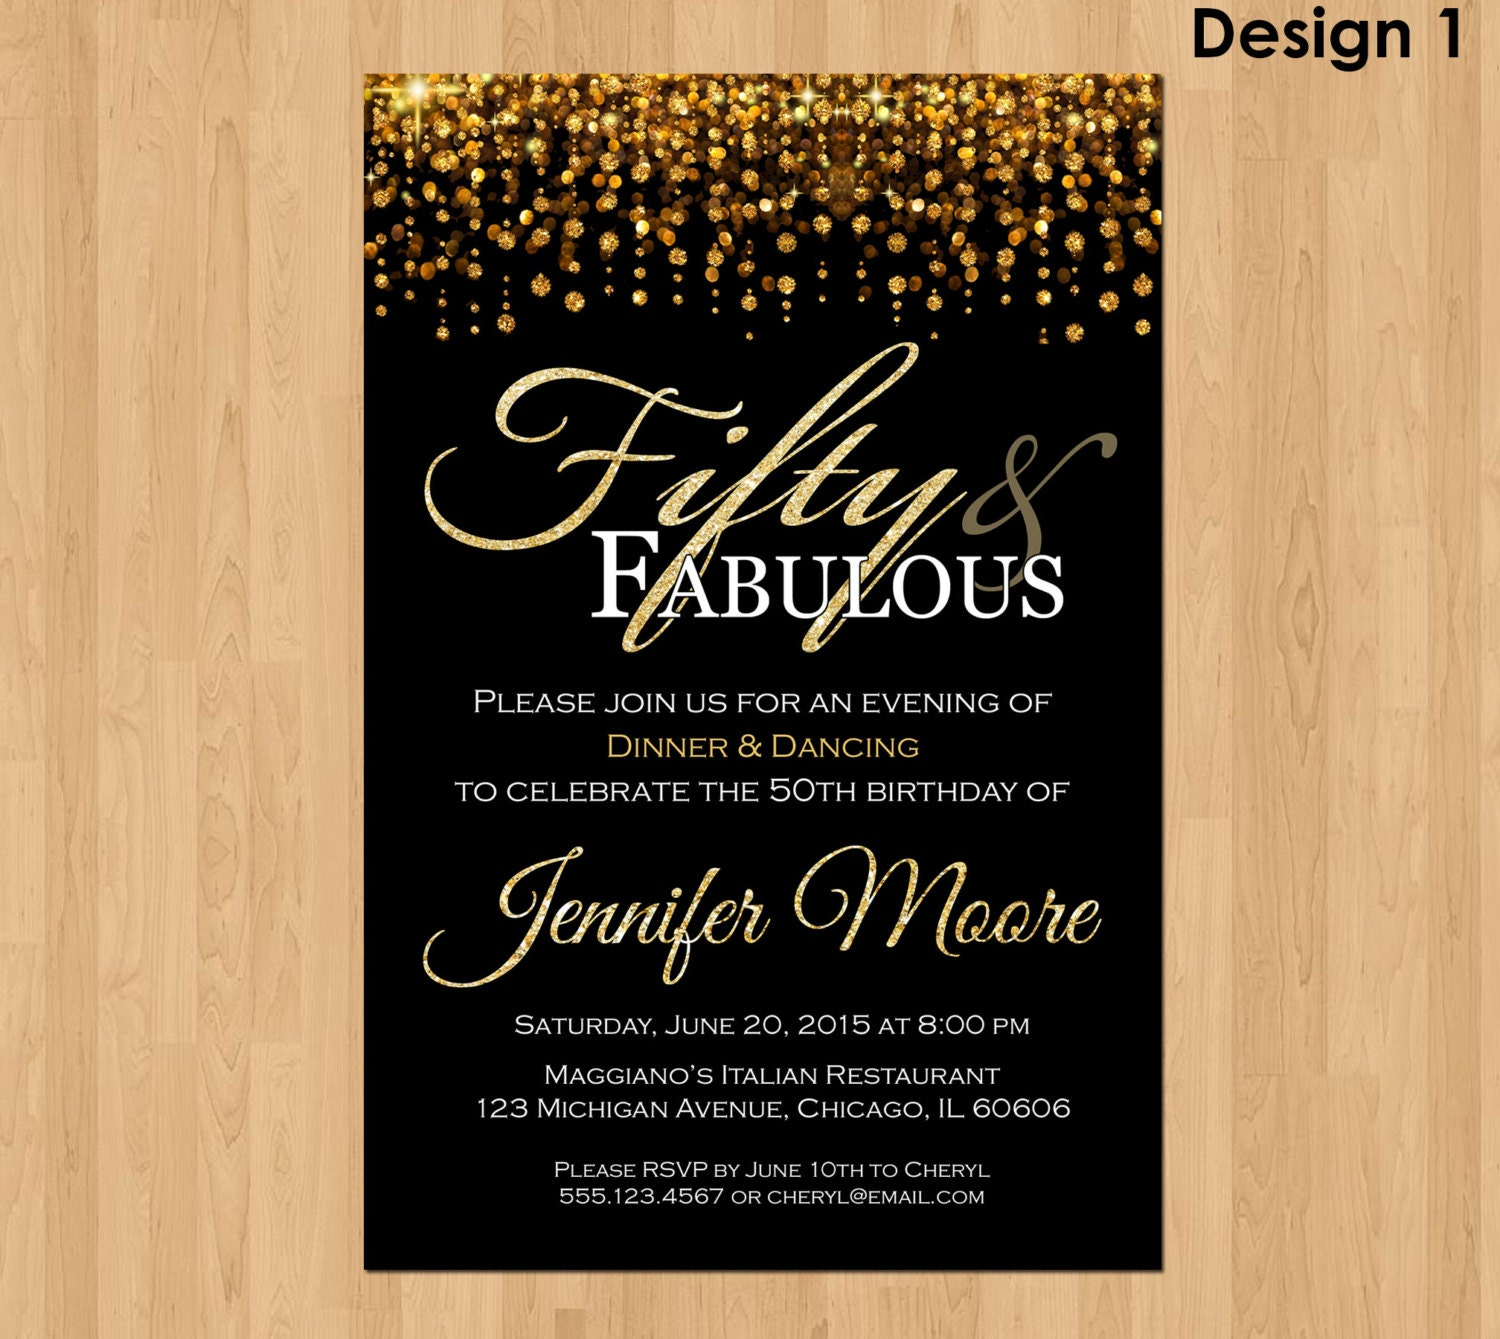 Invitations For 40Th Birthday Party for adorable invitation example